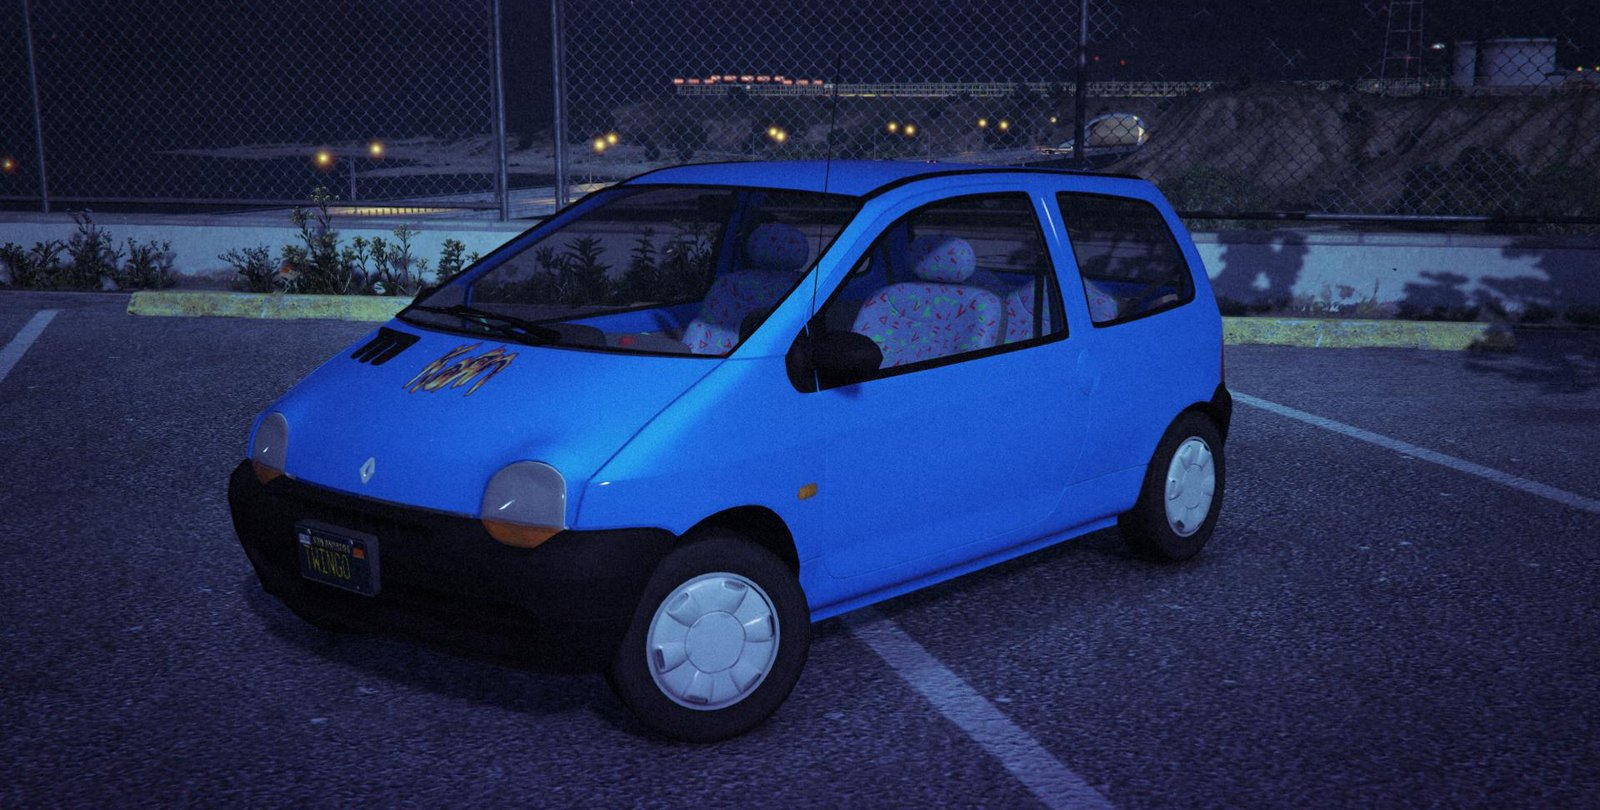 renault twingo v hicules t l chargements gta 5. Black Bedroom Furniture Sets. Home Design Ideas